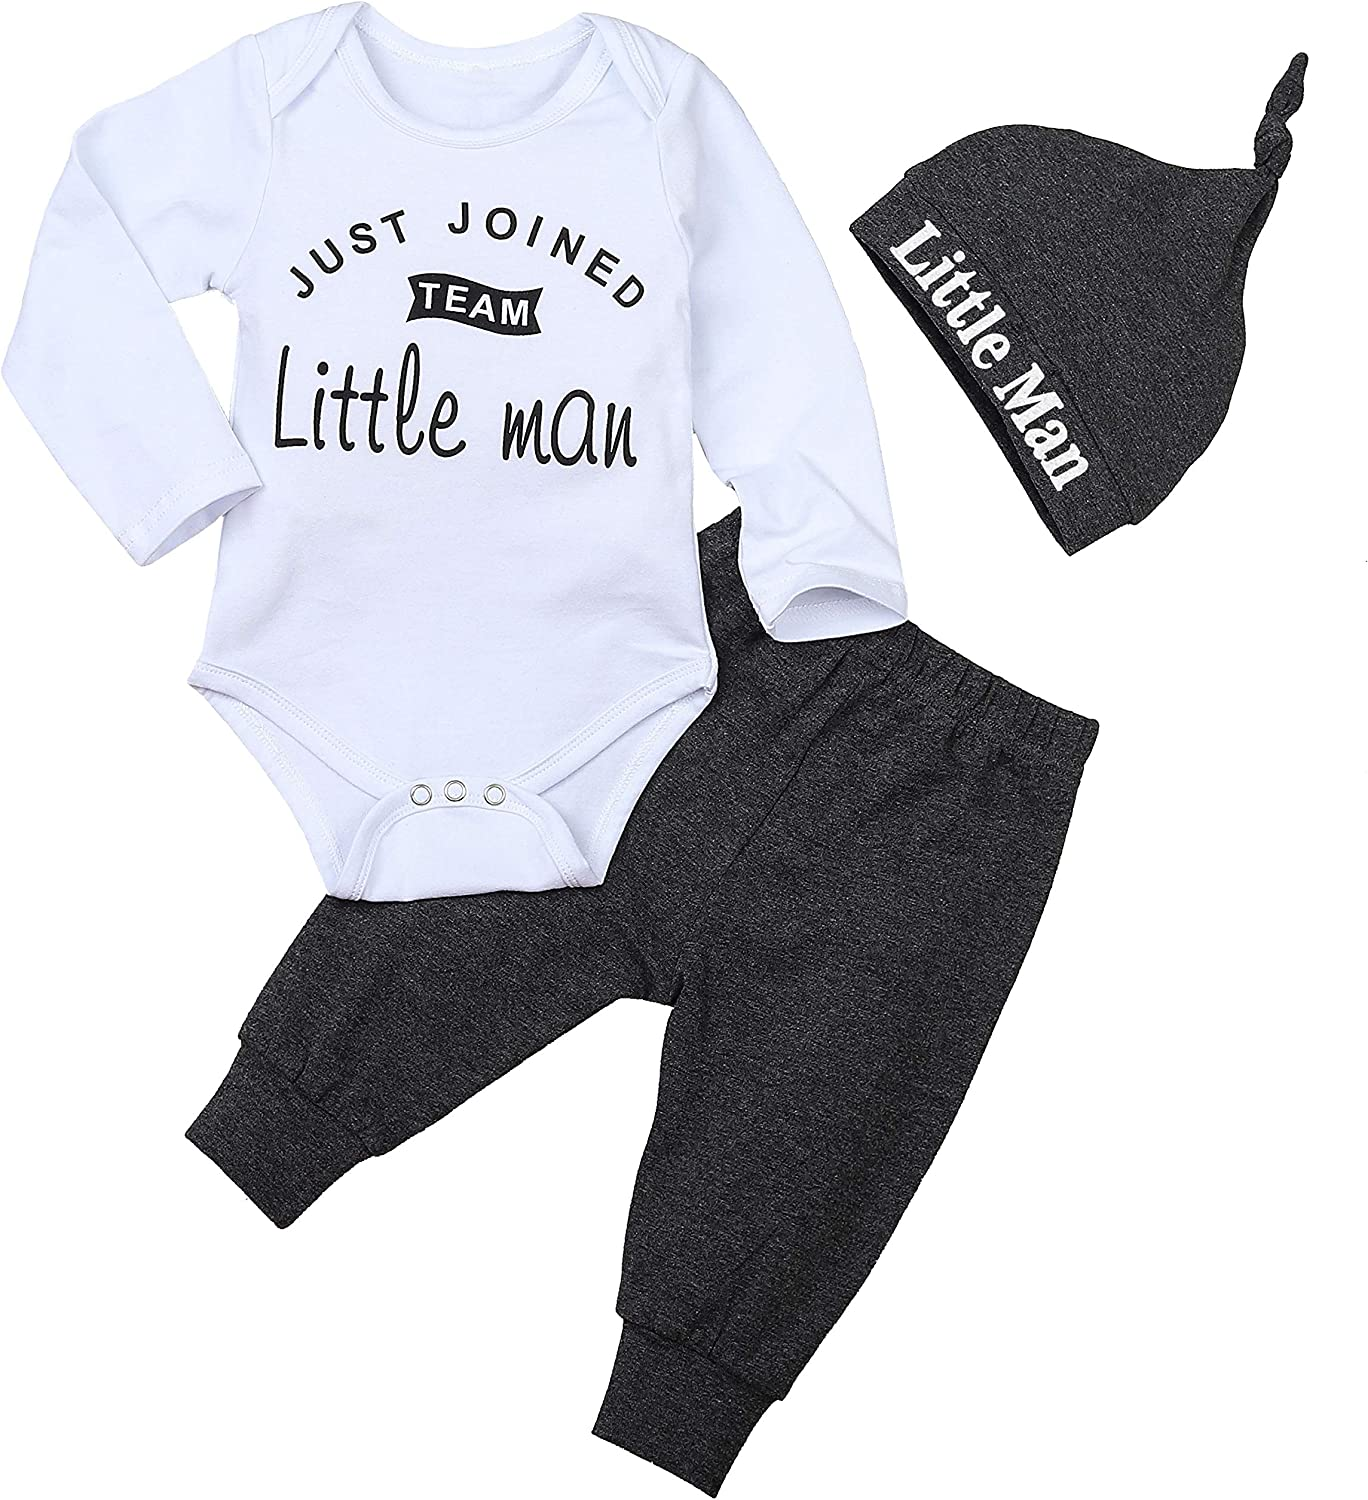 Toddler High Jacksonville Mall quality new Infant Baby Boy Clothes Cute Outfit Golf Summer Black Ro